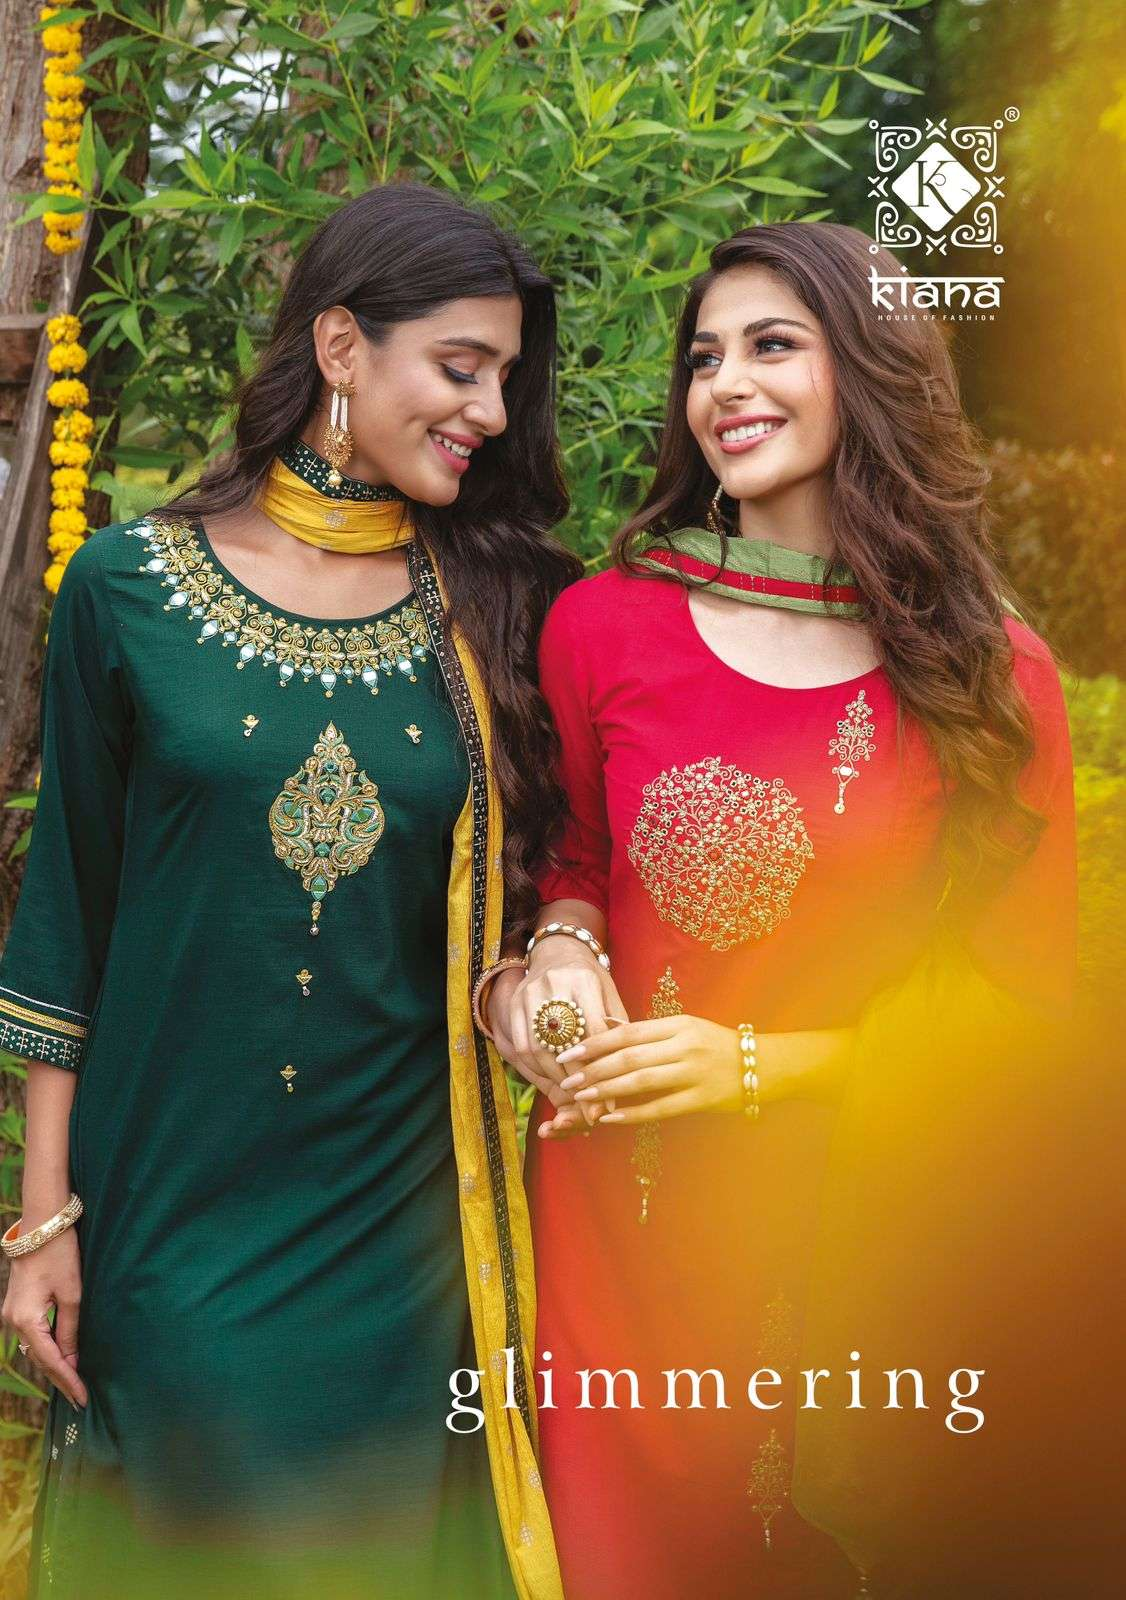 KIANA HOUSE OF FASHION GLIMMERING DESIGNER HEAVY MUSLIN WITH EMBROIDERY WORK READYMADE PARTYWEAR OR FESTIVE WEAR SUITS WHOLESALE